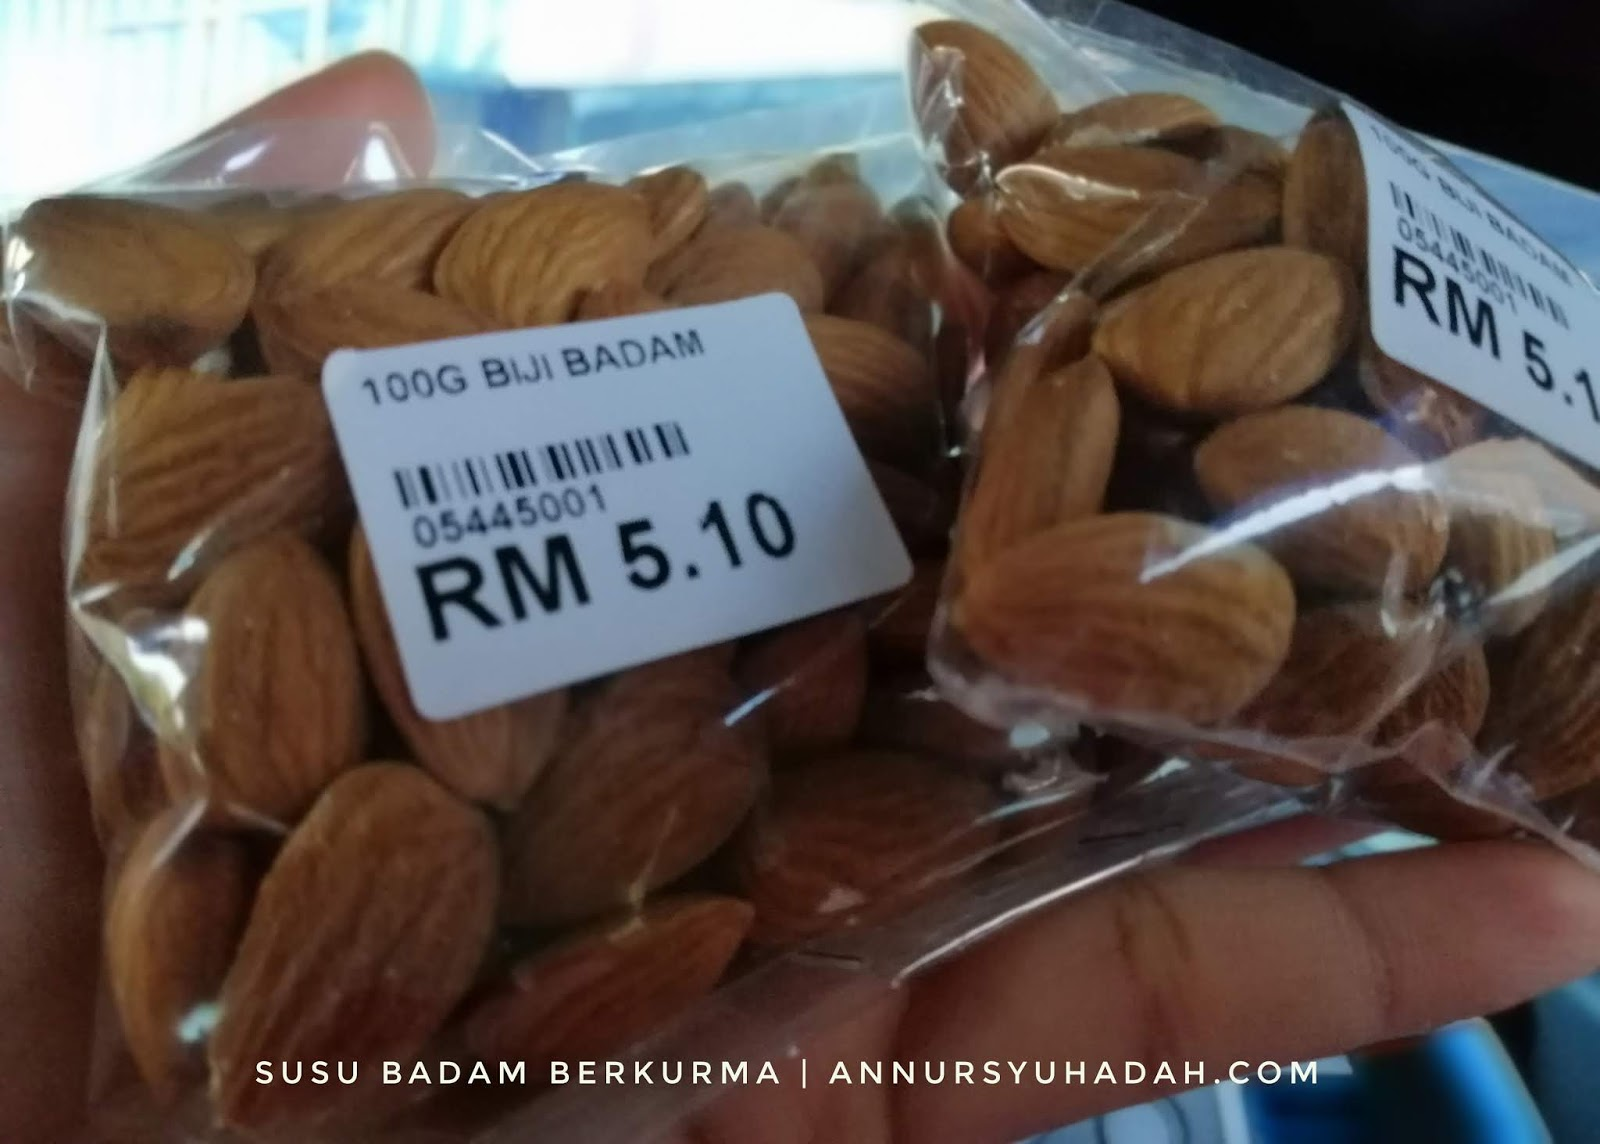 Menu Sahur Ibu Menyusu | Susu menu-sahur-ibu-menyusu-susu-kurma-badam-resepi-susu-badam, Kurma Badam, susu badam homemade, almond milk recipe, how to make almond milk, resepi susu badam, resep susu almond